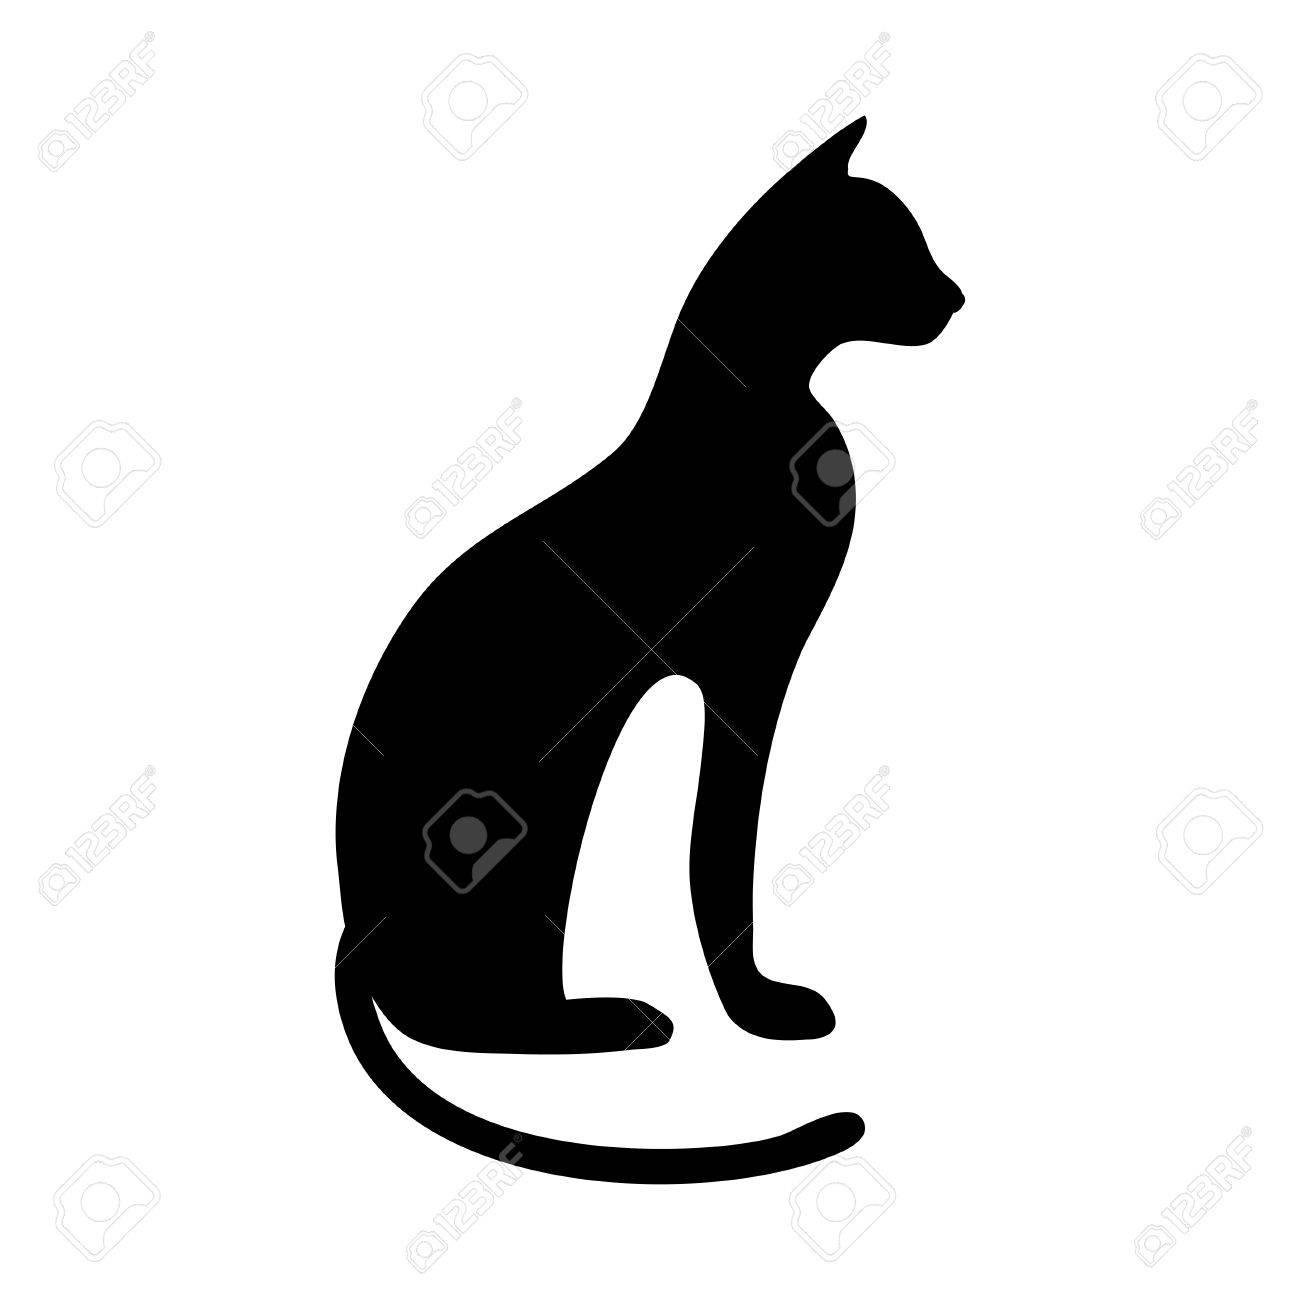 Black Silhouette Of The Ancient Egyptian Cat Breed Sacred Image Seen Paws Tail